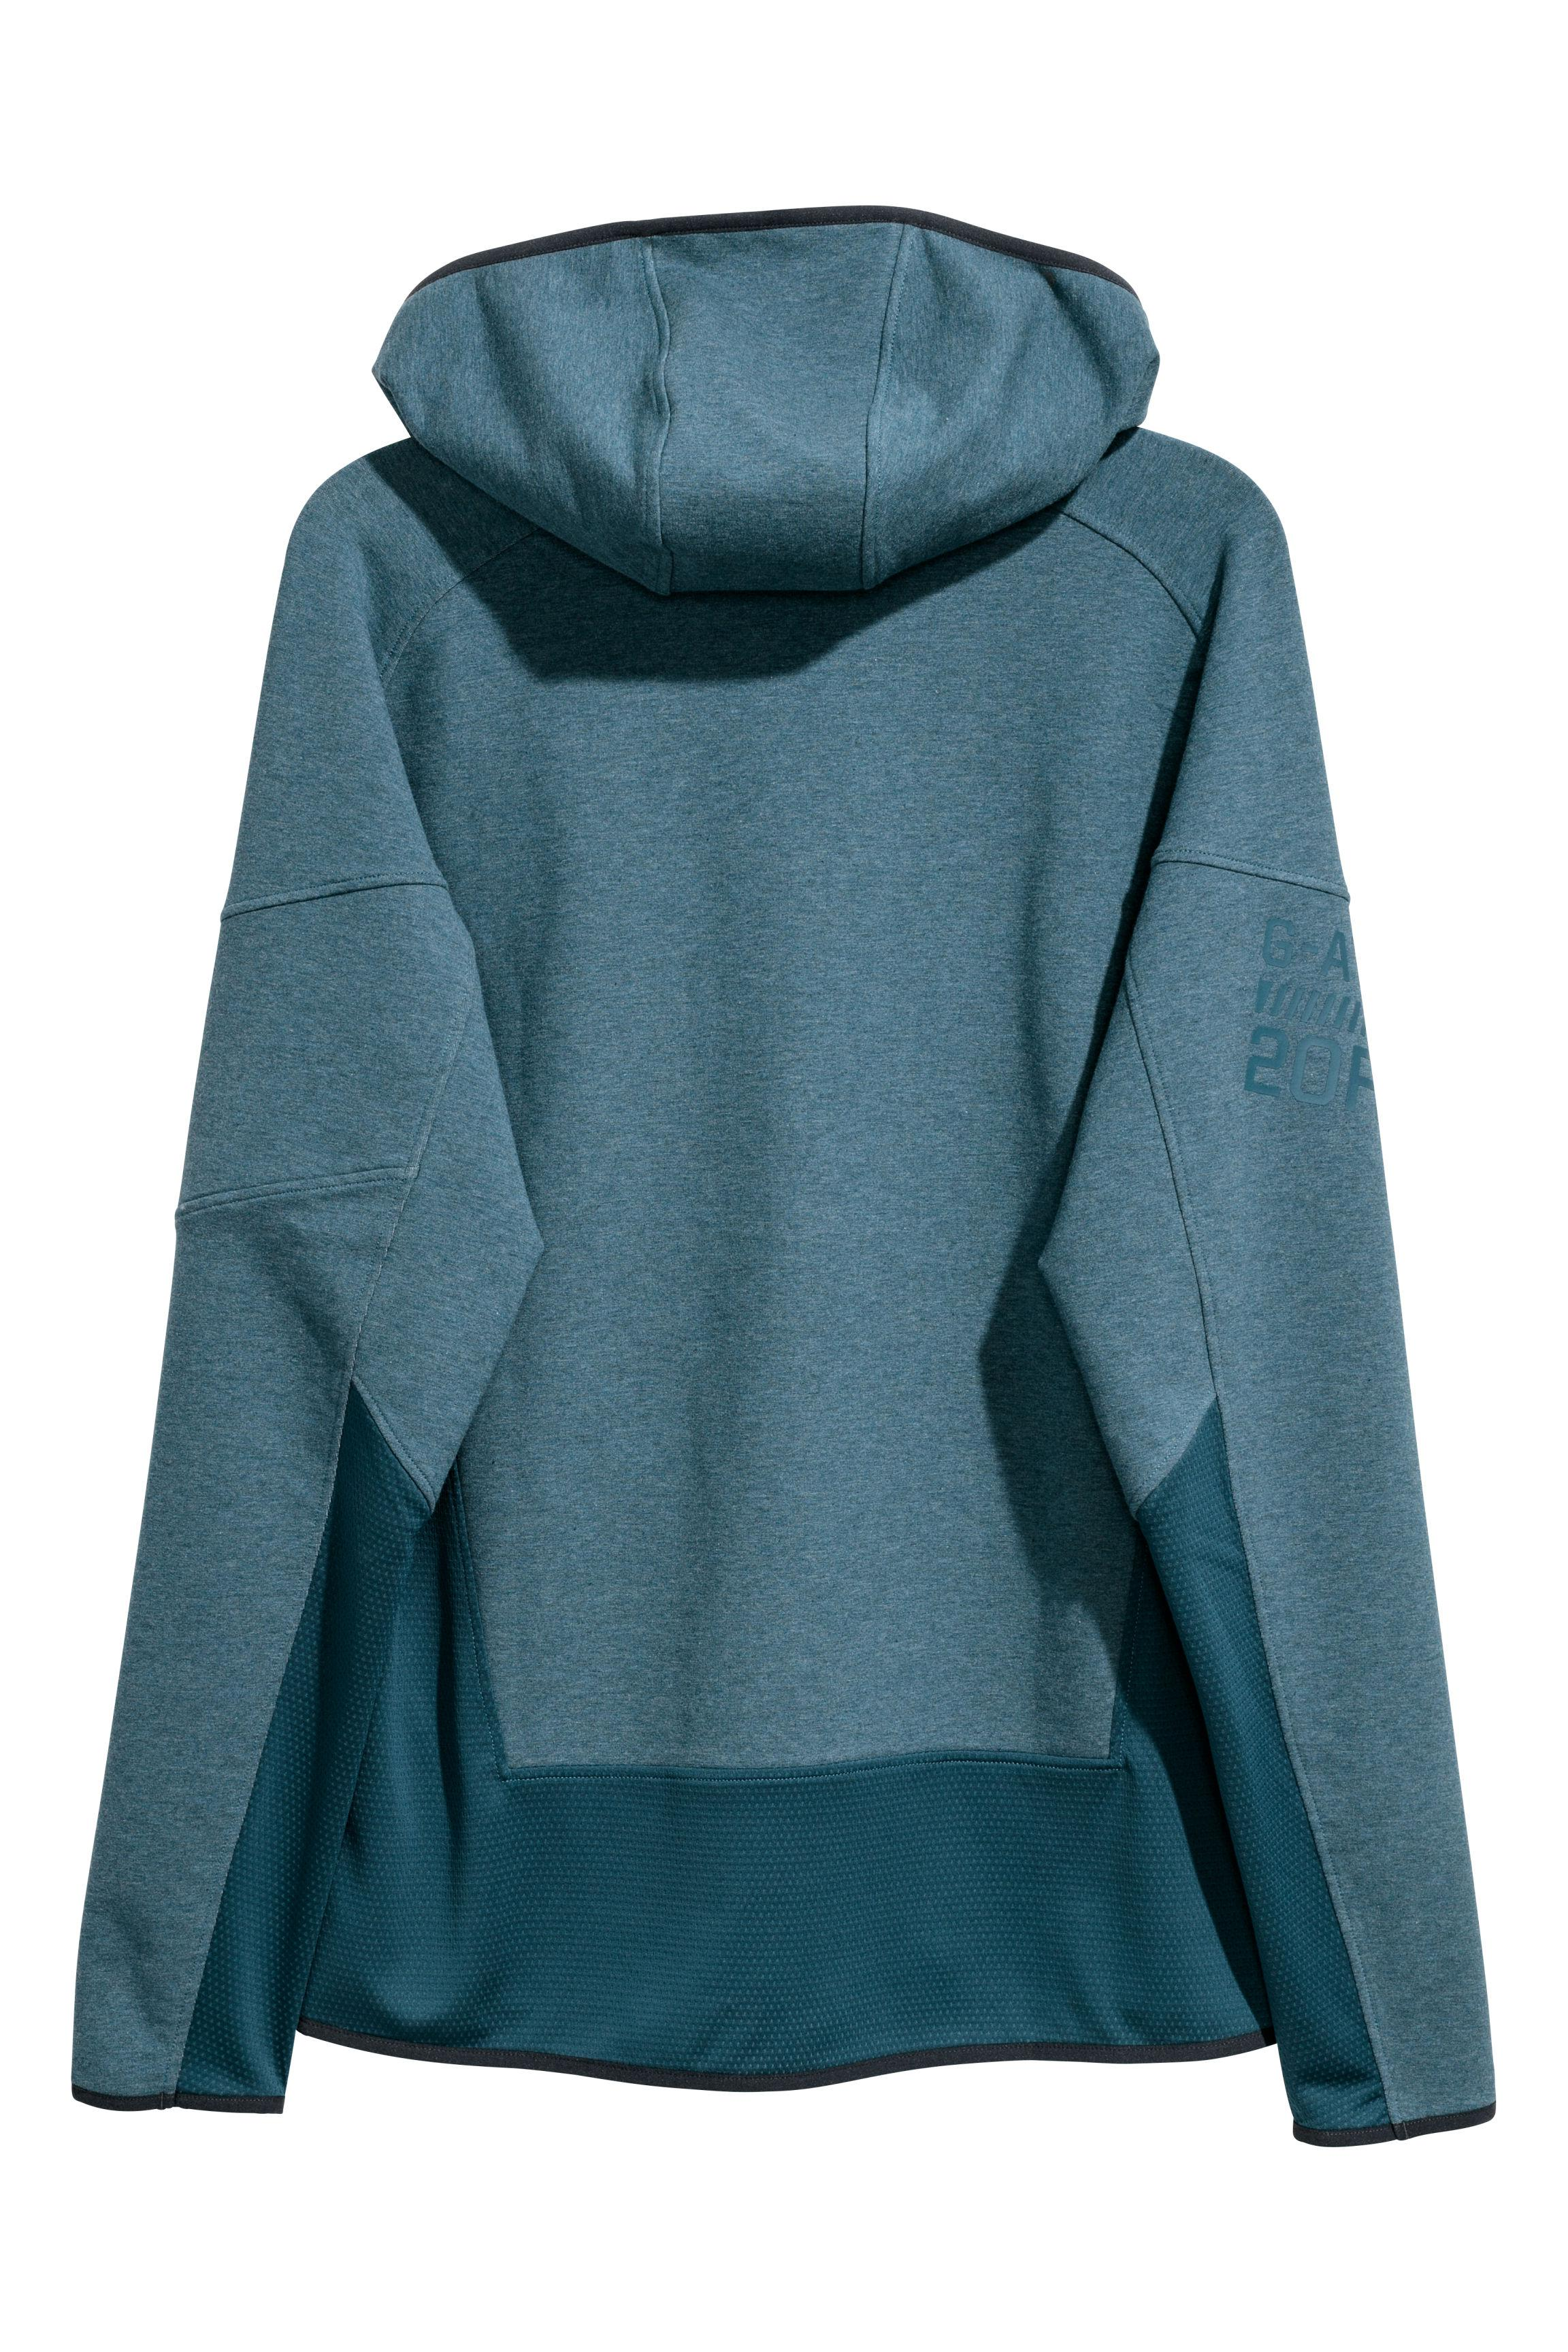 H&M Synthetic Hooded Sports Jacket in Dark Turquoise Marl (Blue) for Men